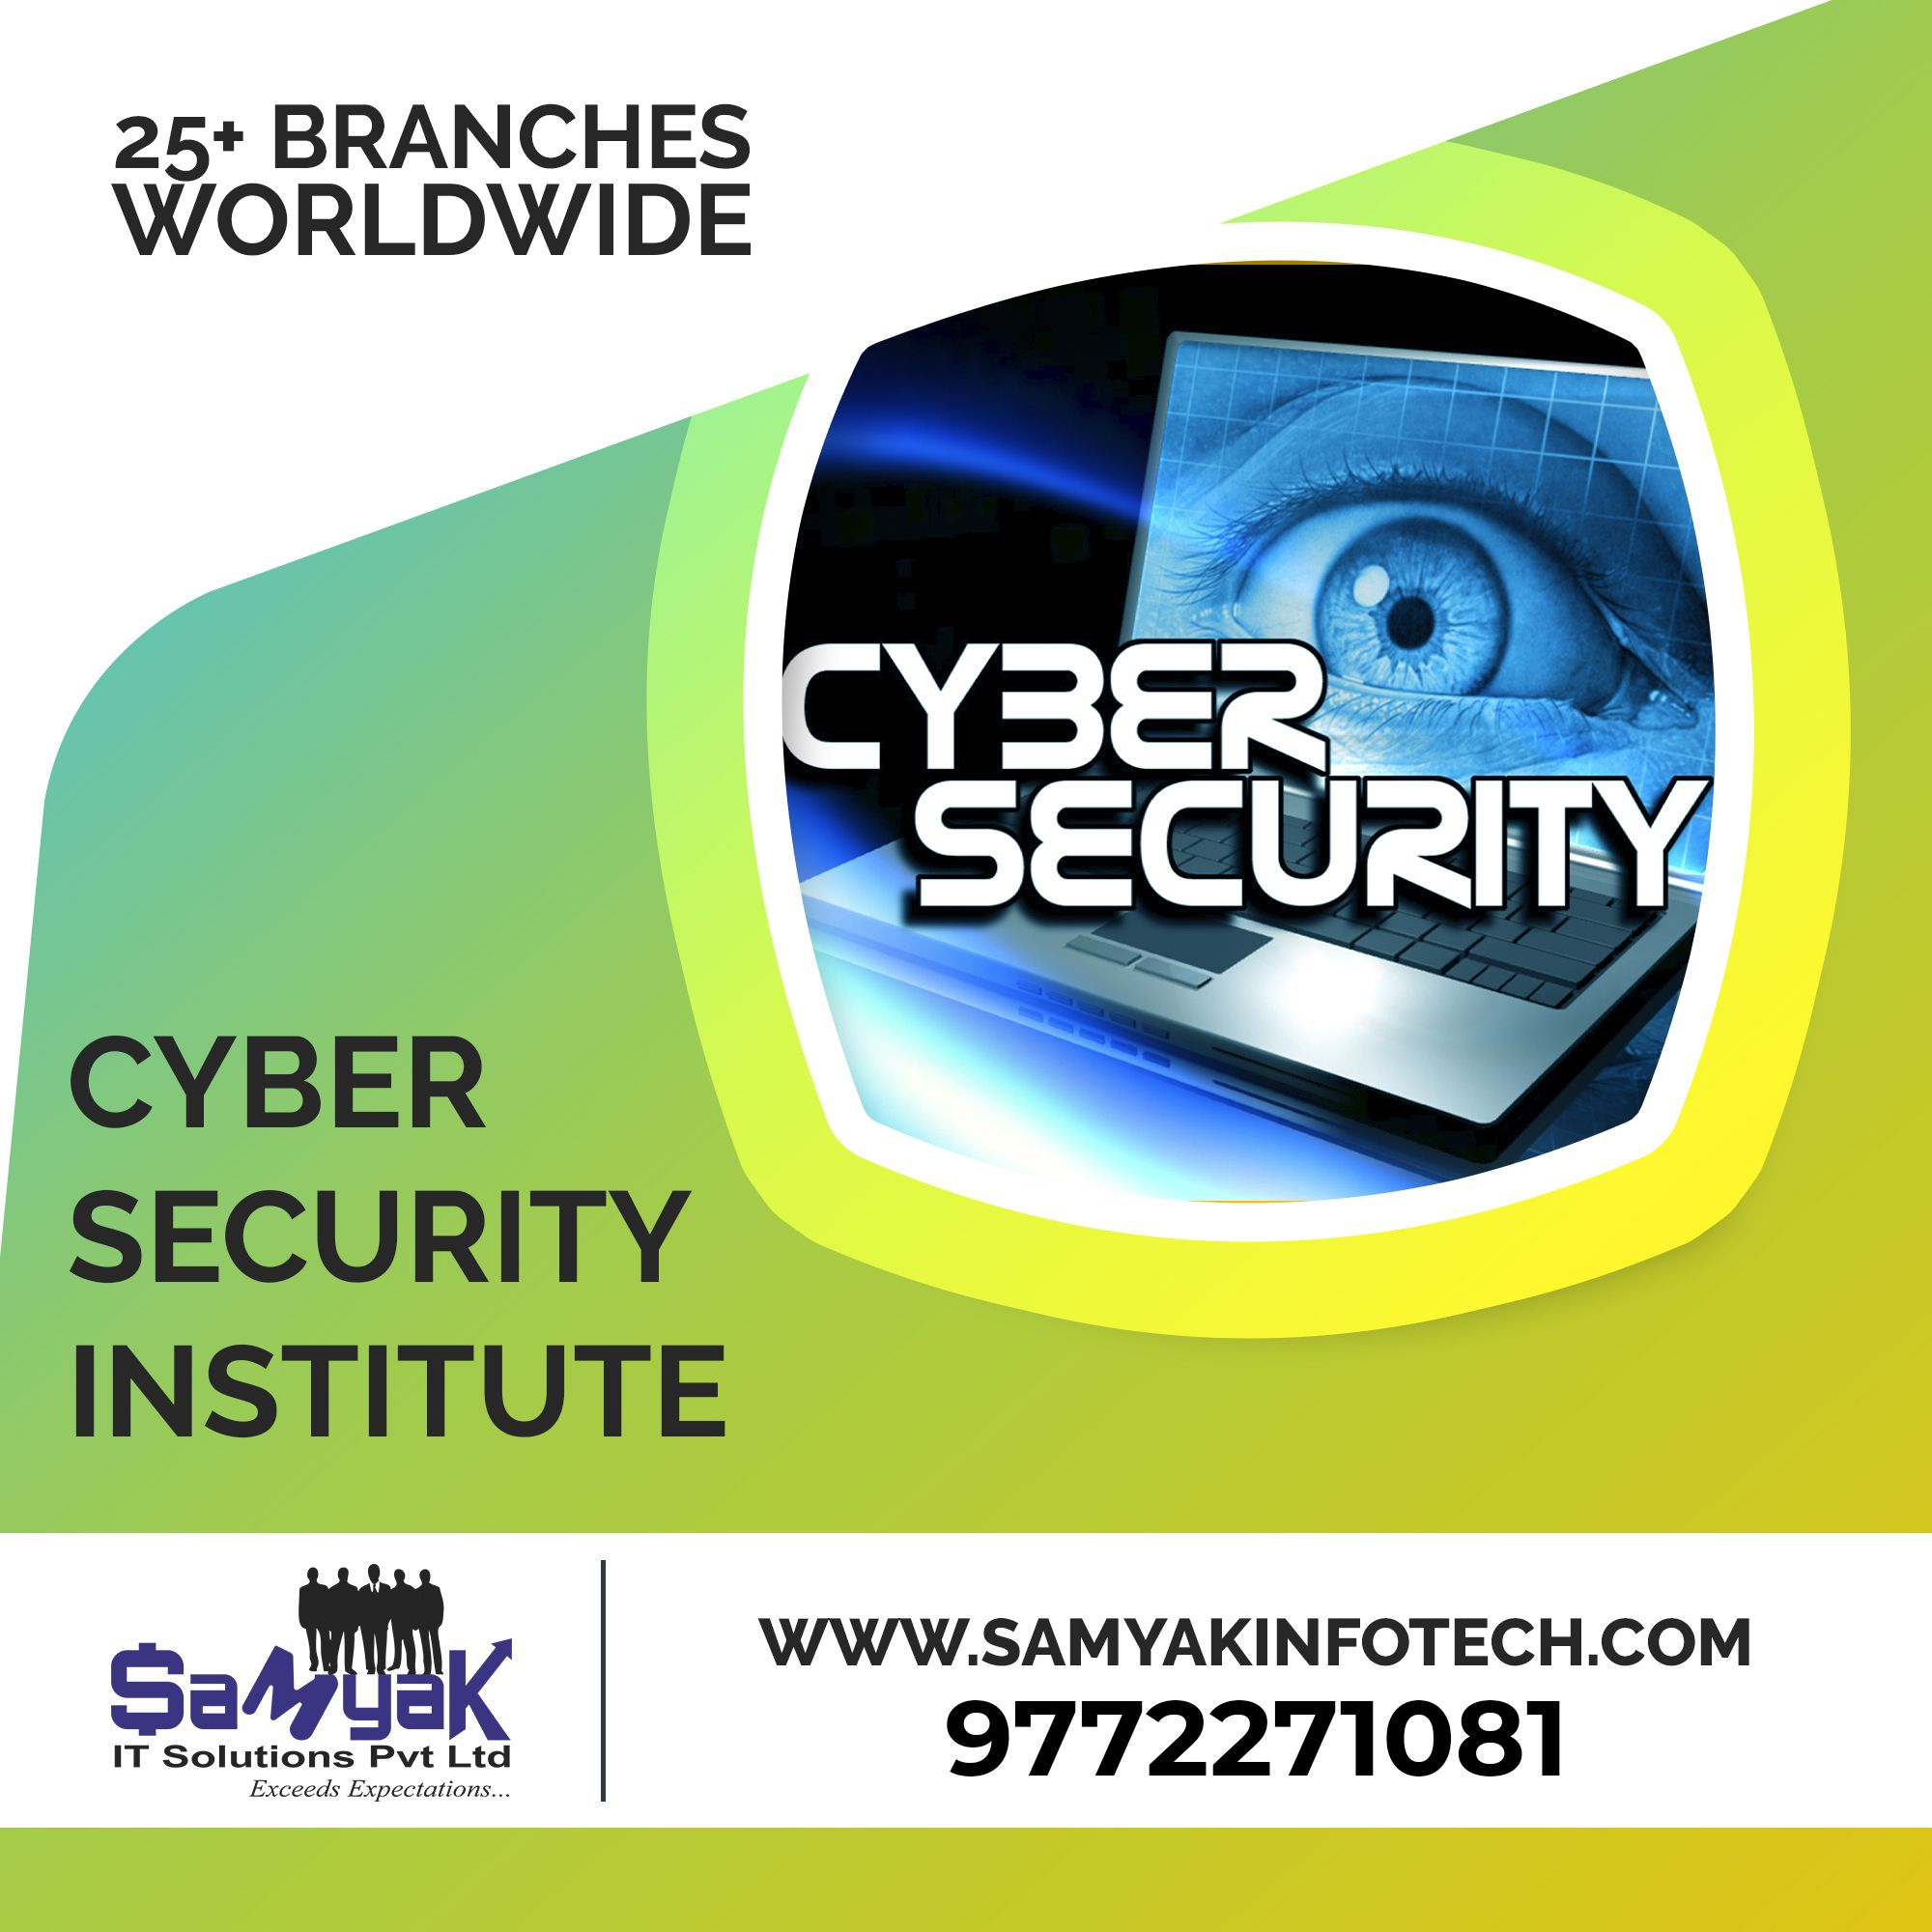 Cyber Security Course Training In Jaipur Kota Ajmer India Cyber Security Course Cyber Security Cybersecurity Training